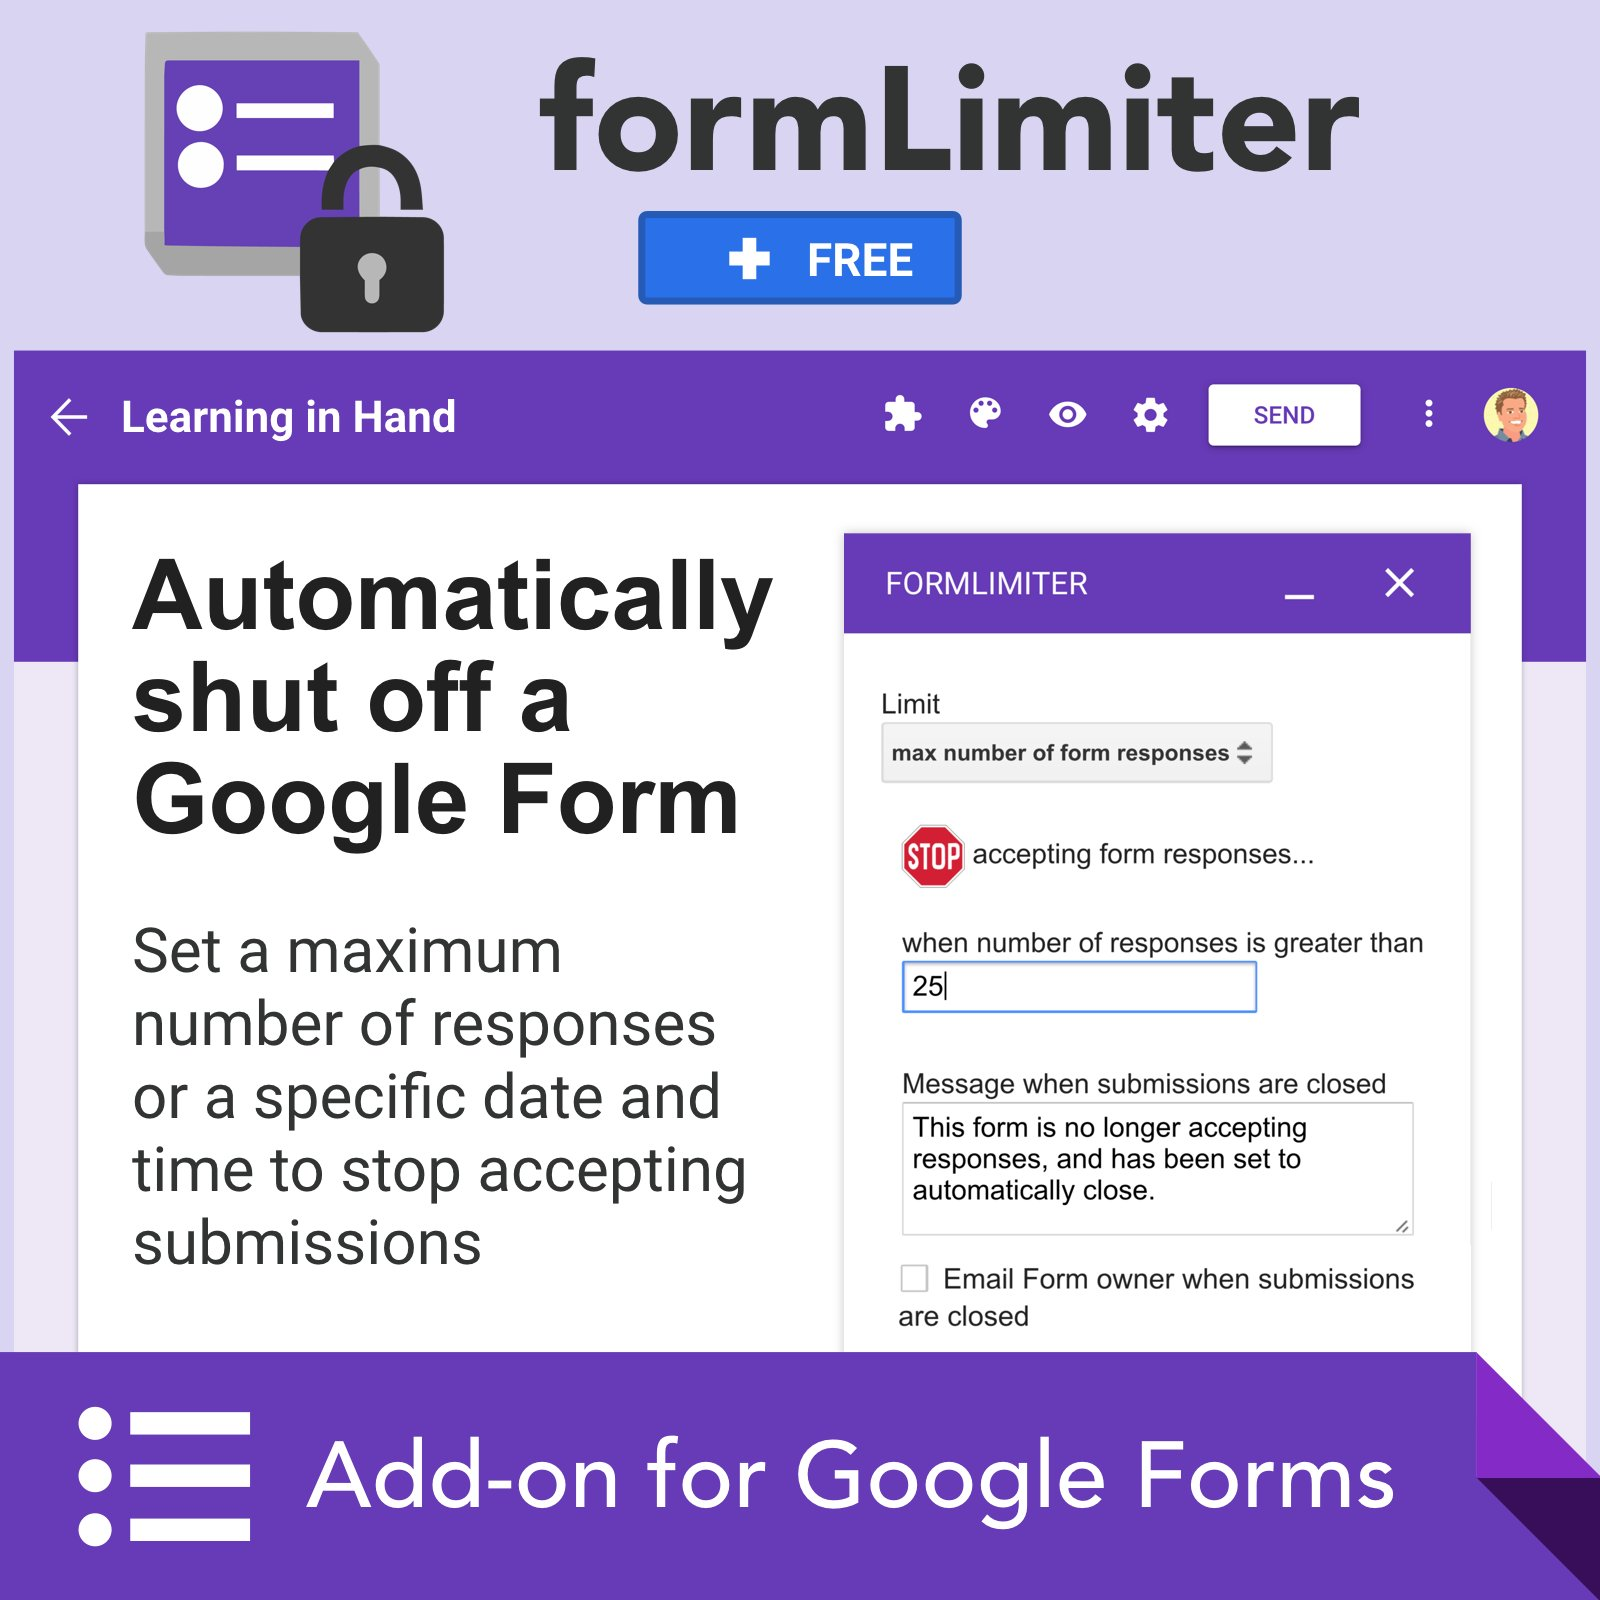 🔏 The formLimiter add-on shuts off a Google Form after a max number of responses or at a specific date and time… https://t.co/5knyLEUBqE